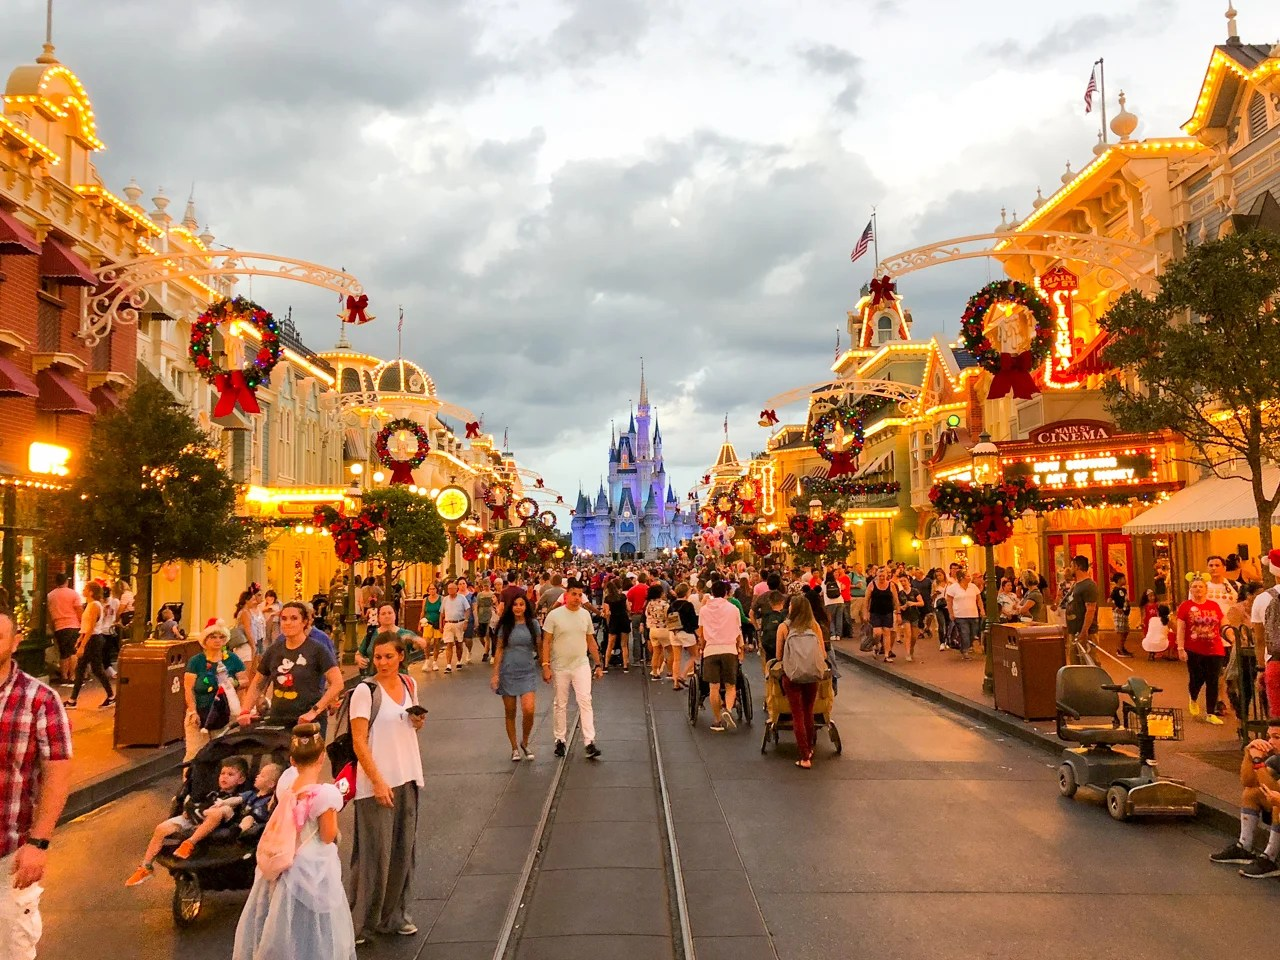 5 hour waits for fun: The week we'd never visit Disney World